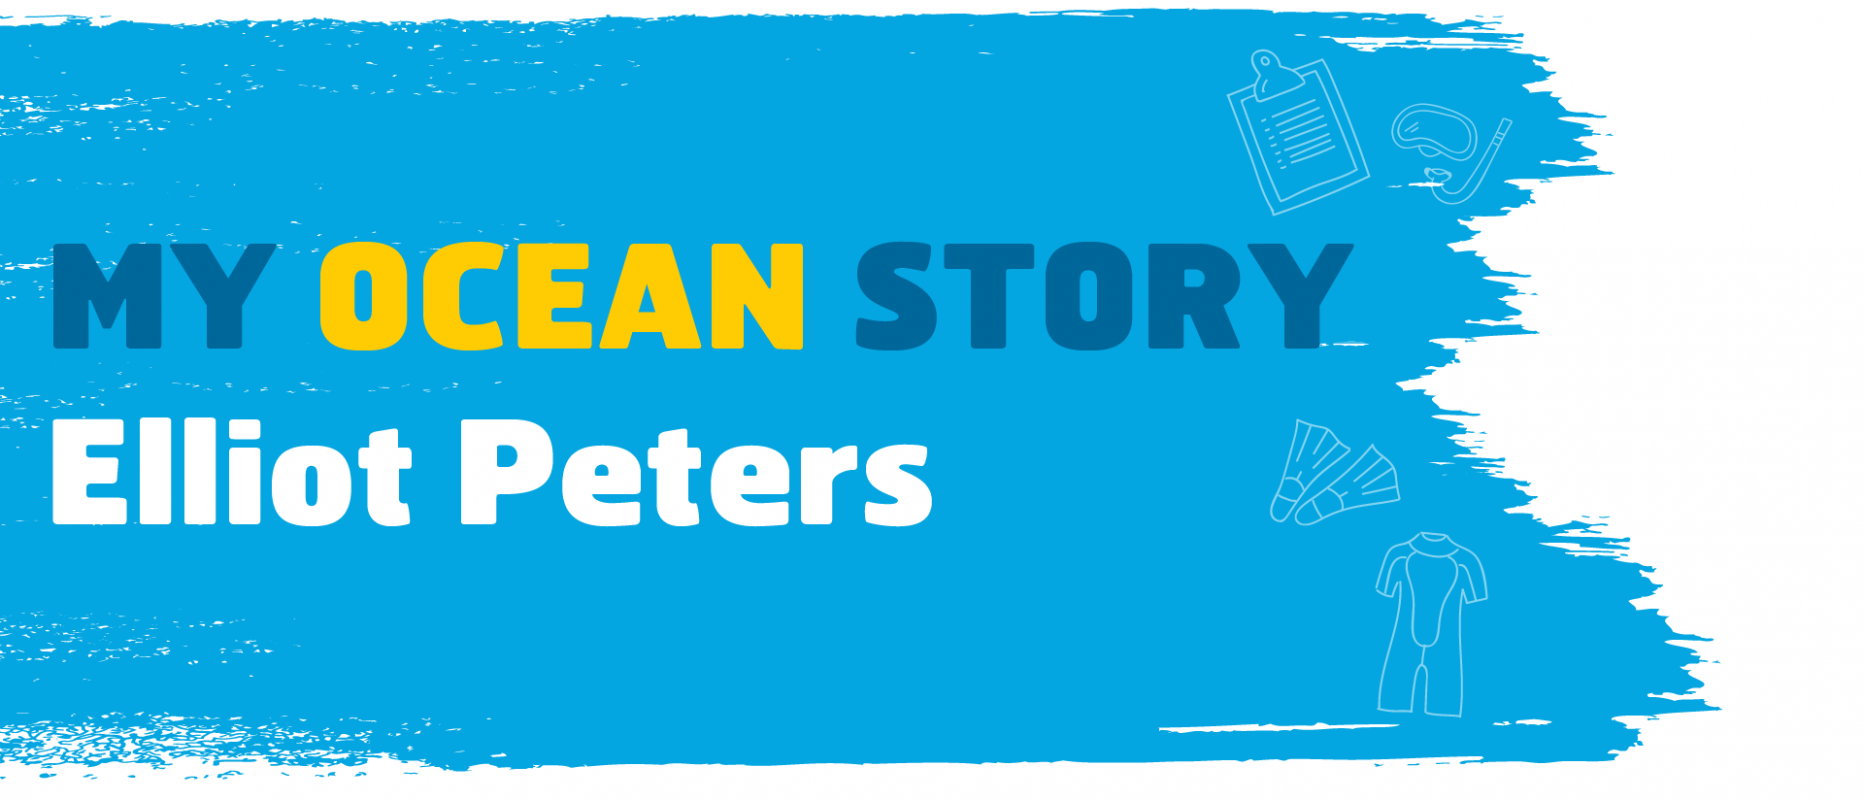 My Ocean Story Elliot Peters